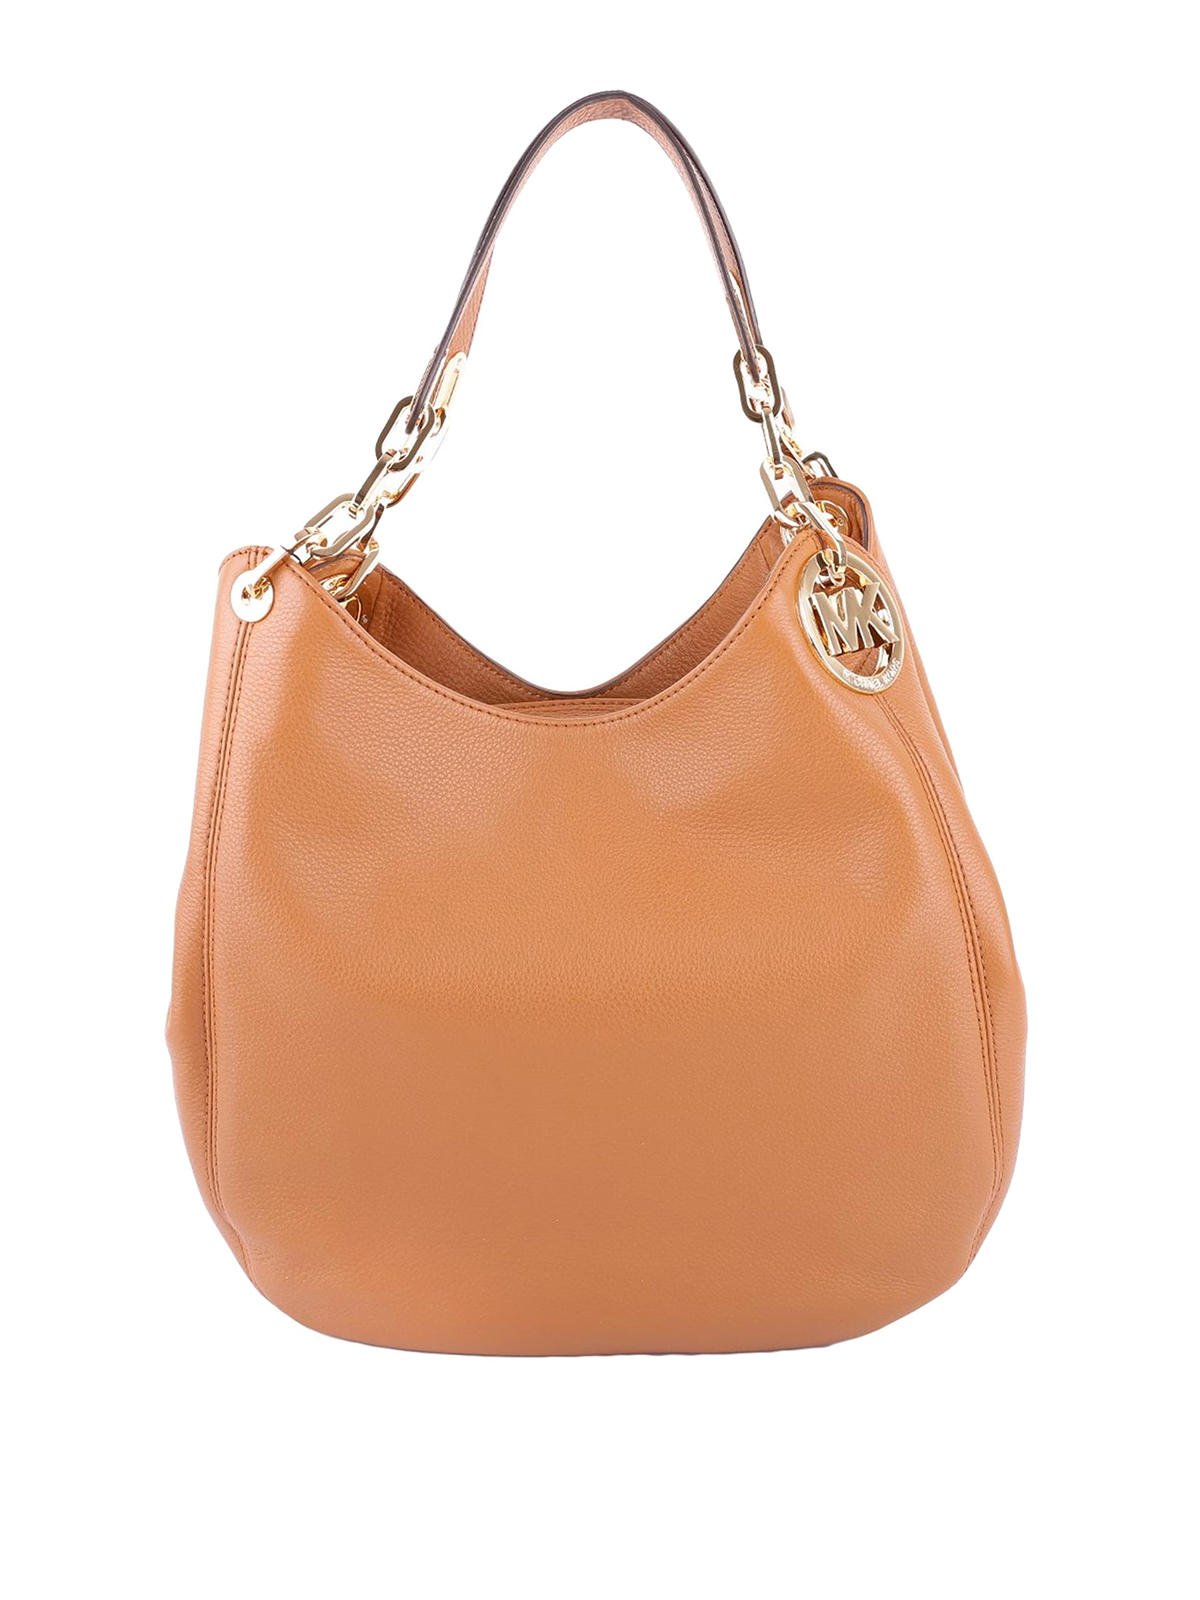 e3f38e9a75 Michael Kors - Fulton large acorn leather shoulder bag - shoulder ...